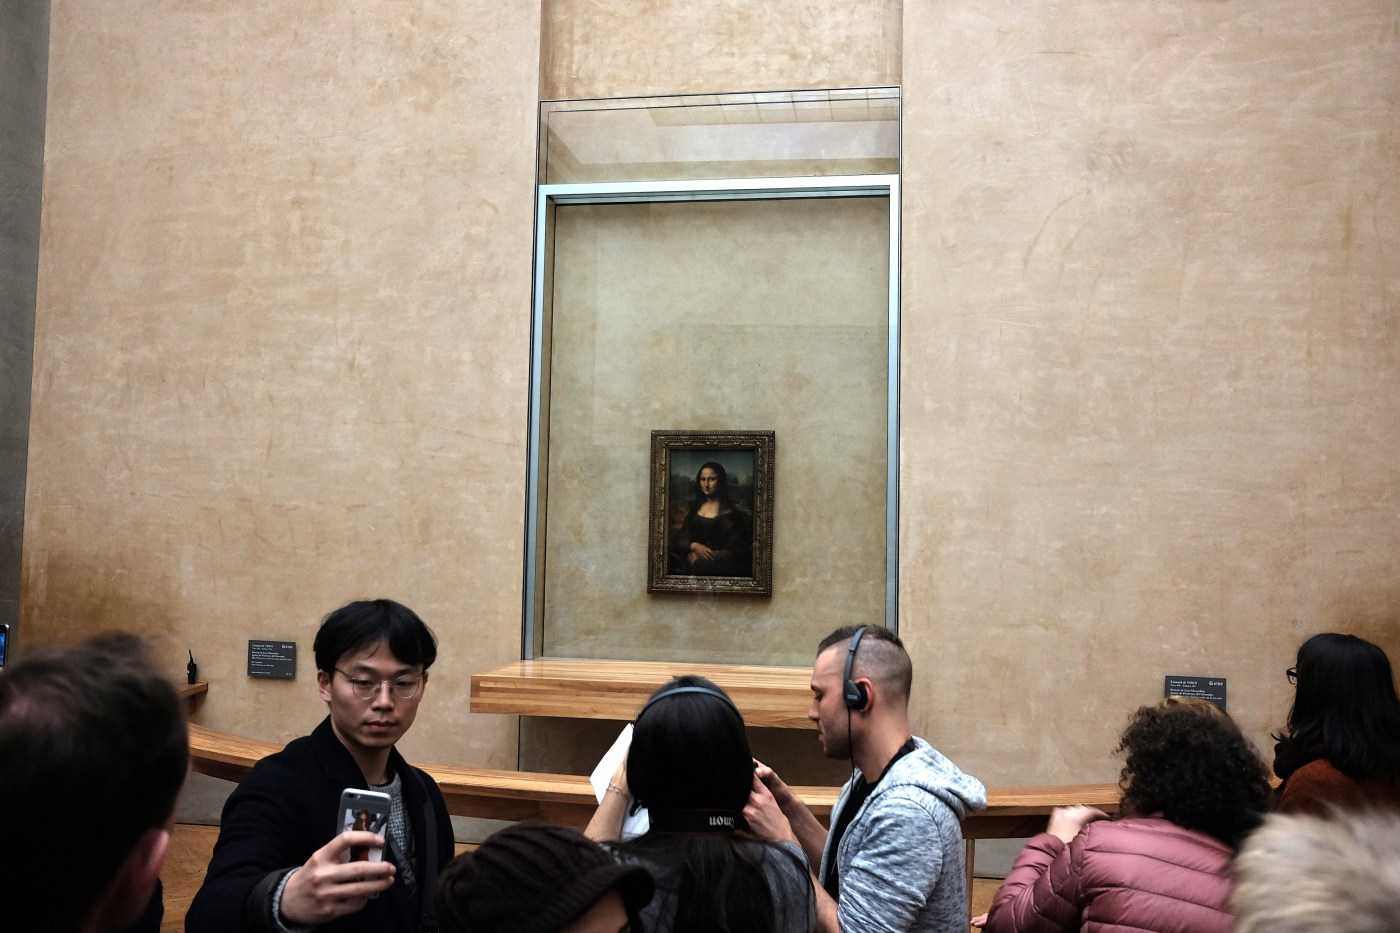 Leonardo da Vinci's Mona Lisa on display at the Louvre, which also houses multiple Breguet timepieces